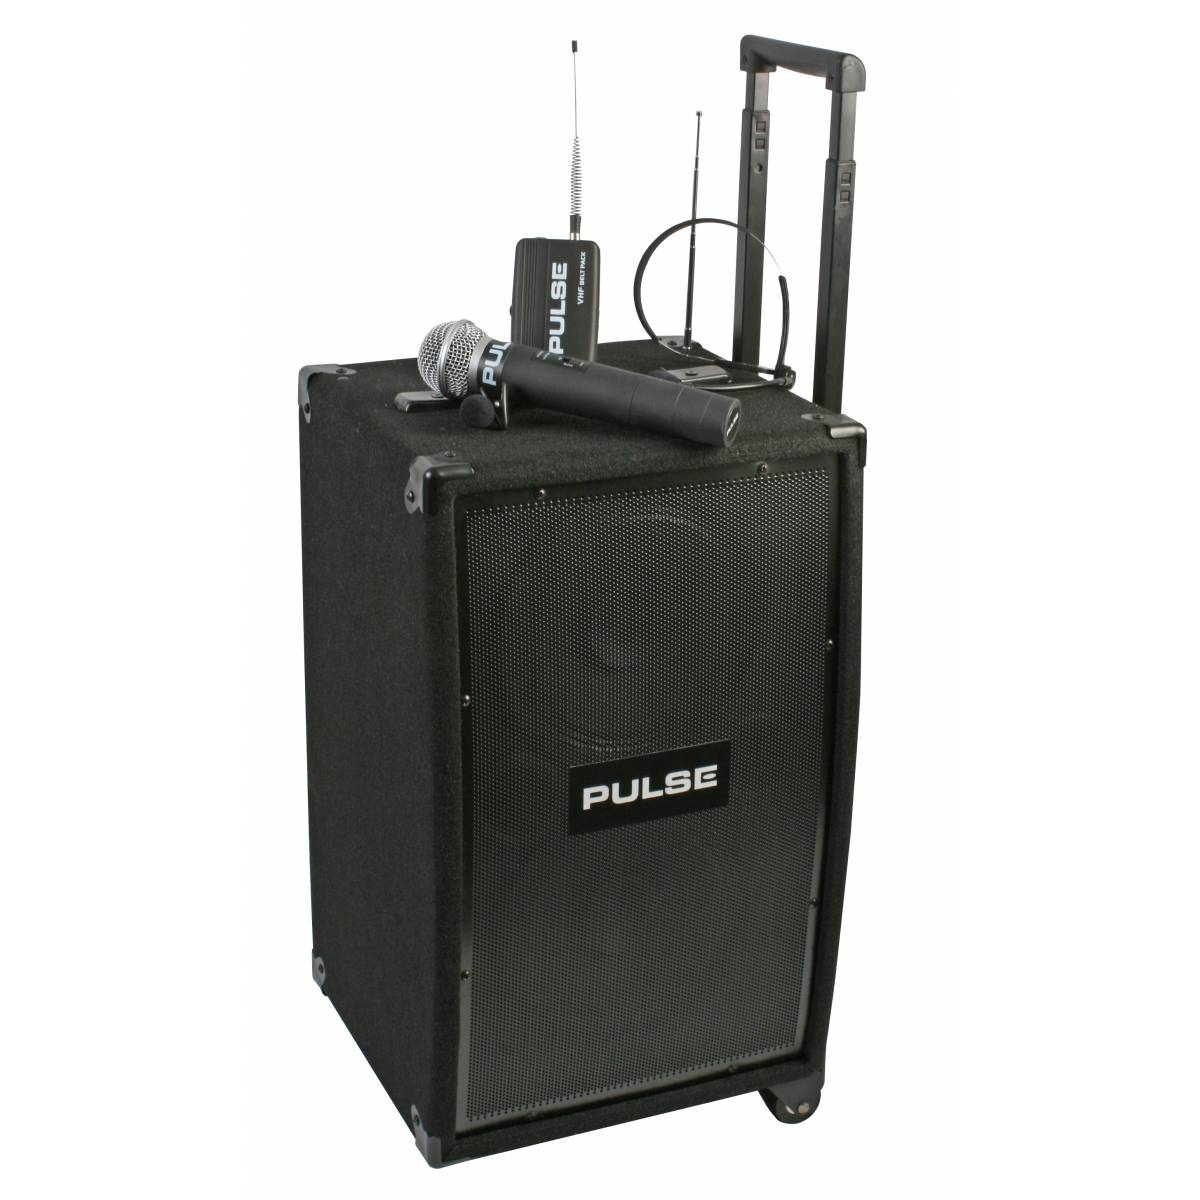 Fp 90 as well Base also Pyle Pro Audio Dj Pzr6xa Rack Mount 2200 Watt    lifier Gemini Gt 1004 Speakers Cables Pyle Package81 likewise Portable Pa System 50w With Wireless Microphones P4508 as well S lepad Pro. on alesis sound system